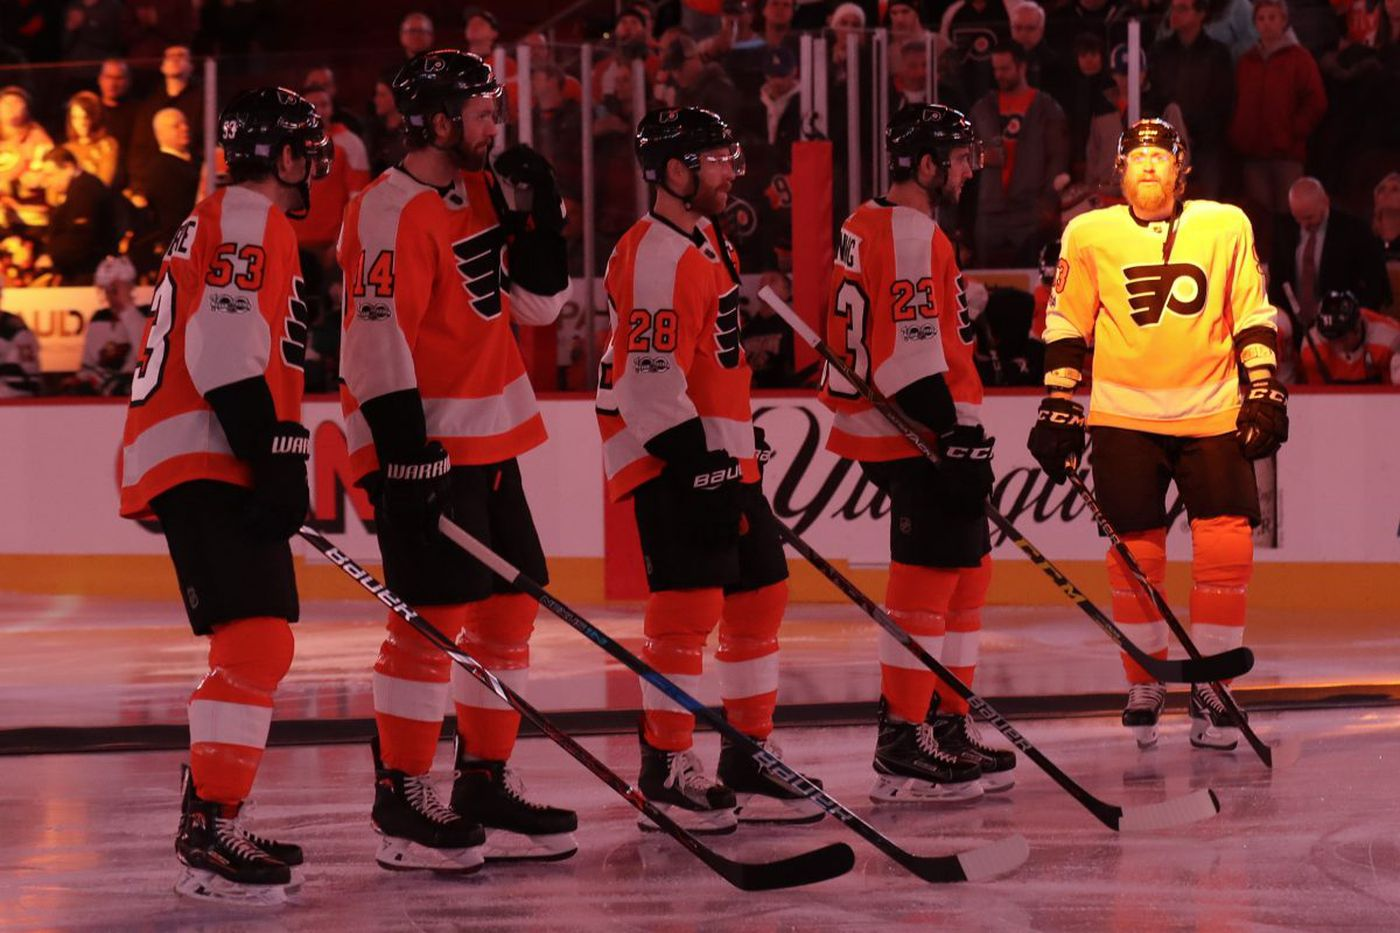 Sports Tonight: Flyers need goals from more than usual suspects